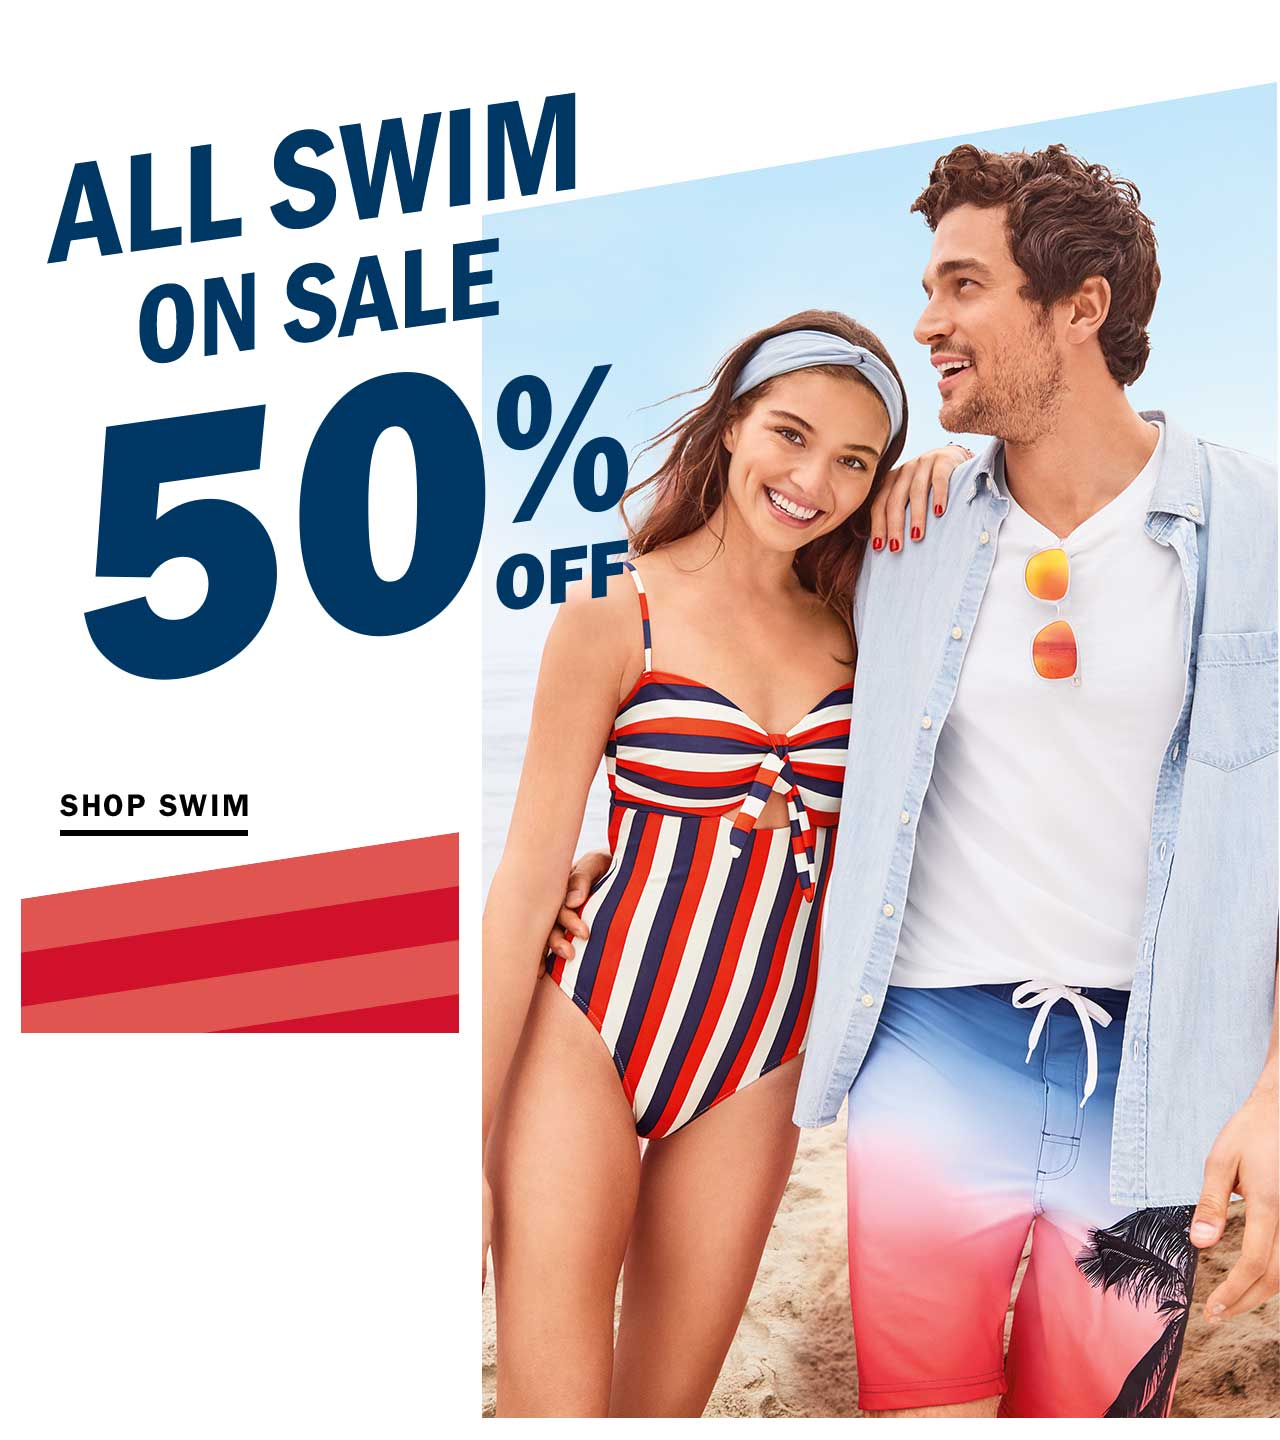 ALL SWIM ON SALE 50% OFF | SHOP SWIM